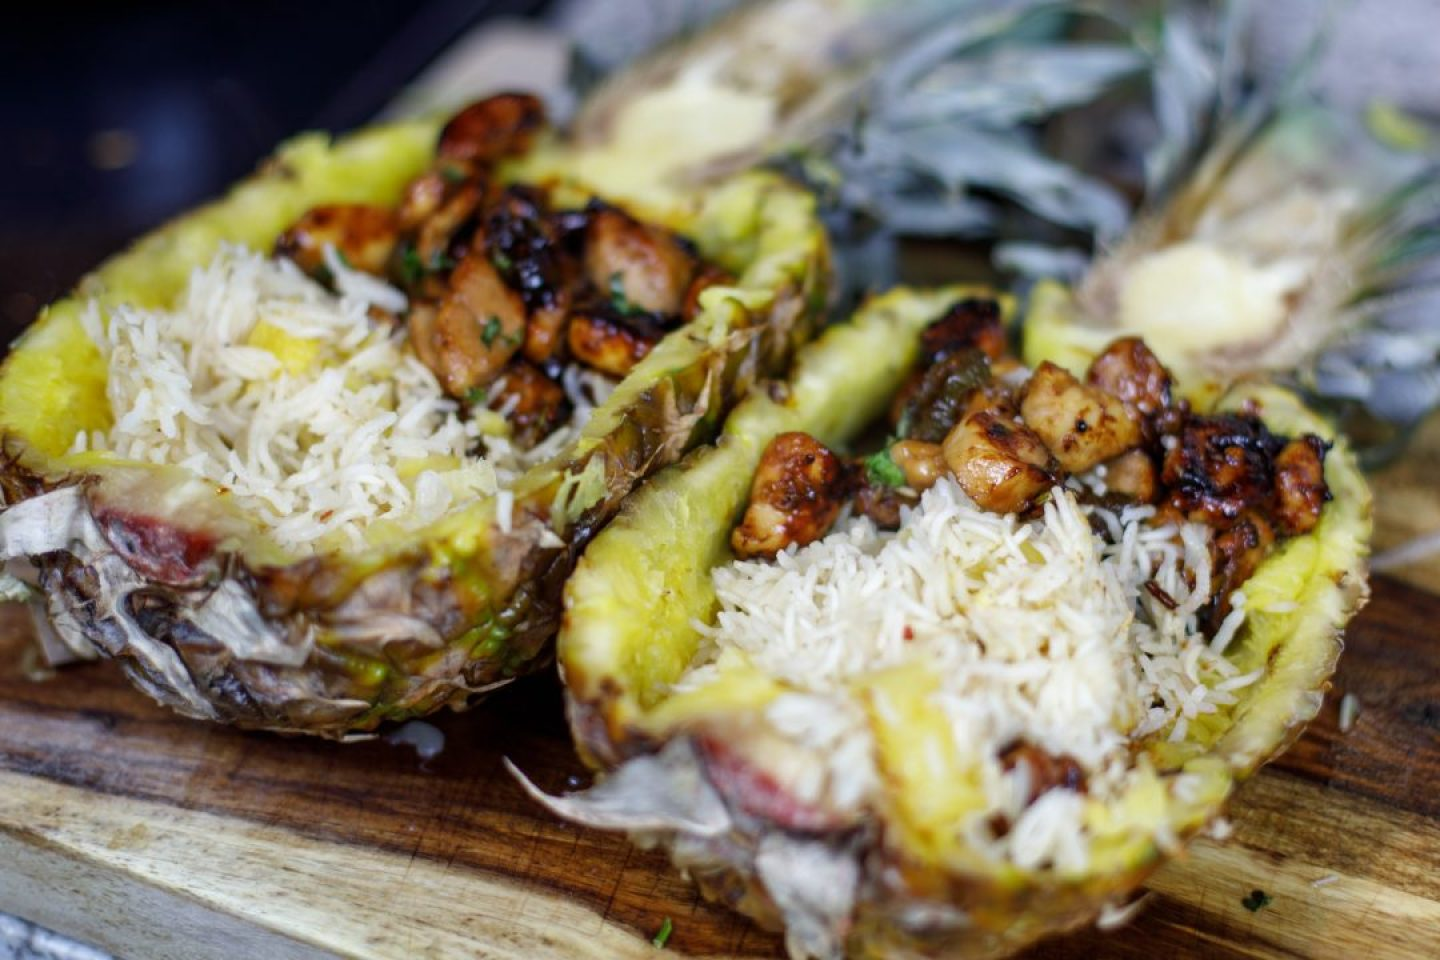 Spicy Teriyaki Pineapple Boats